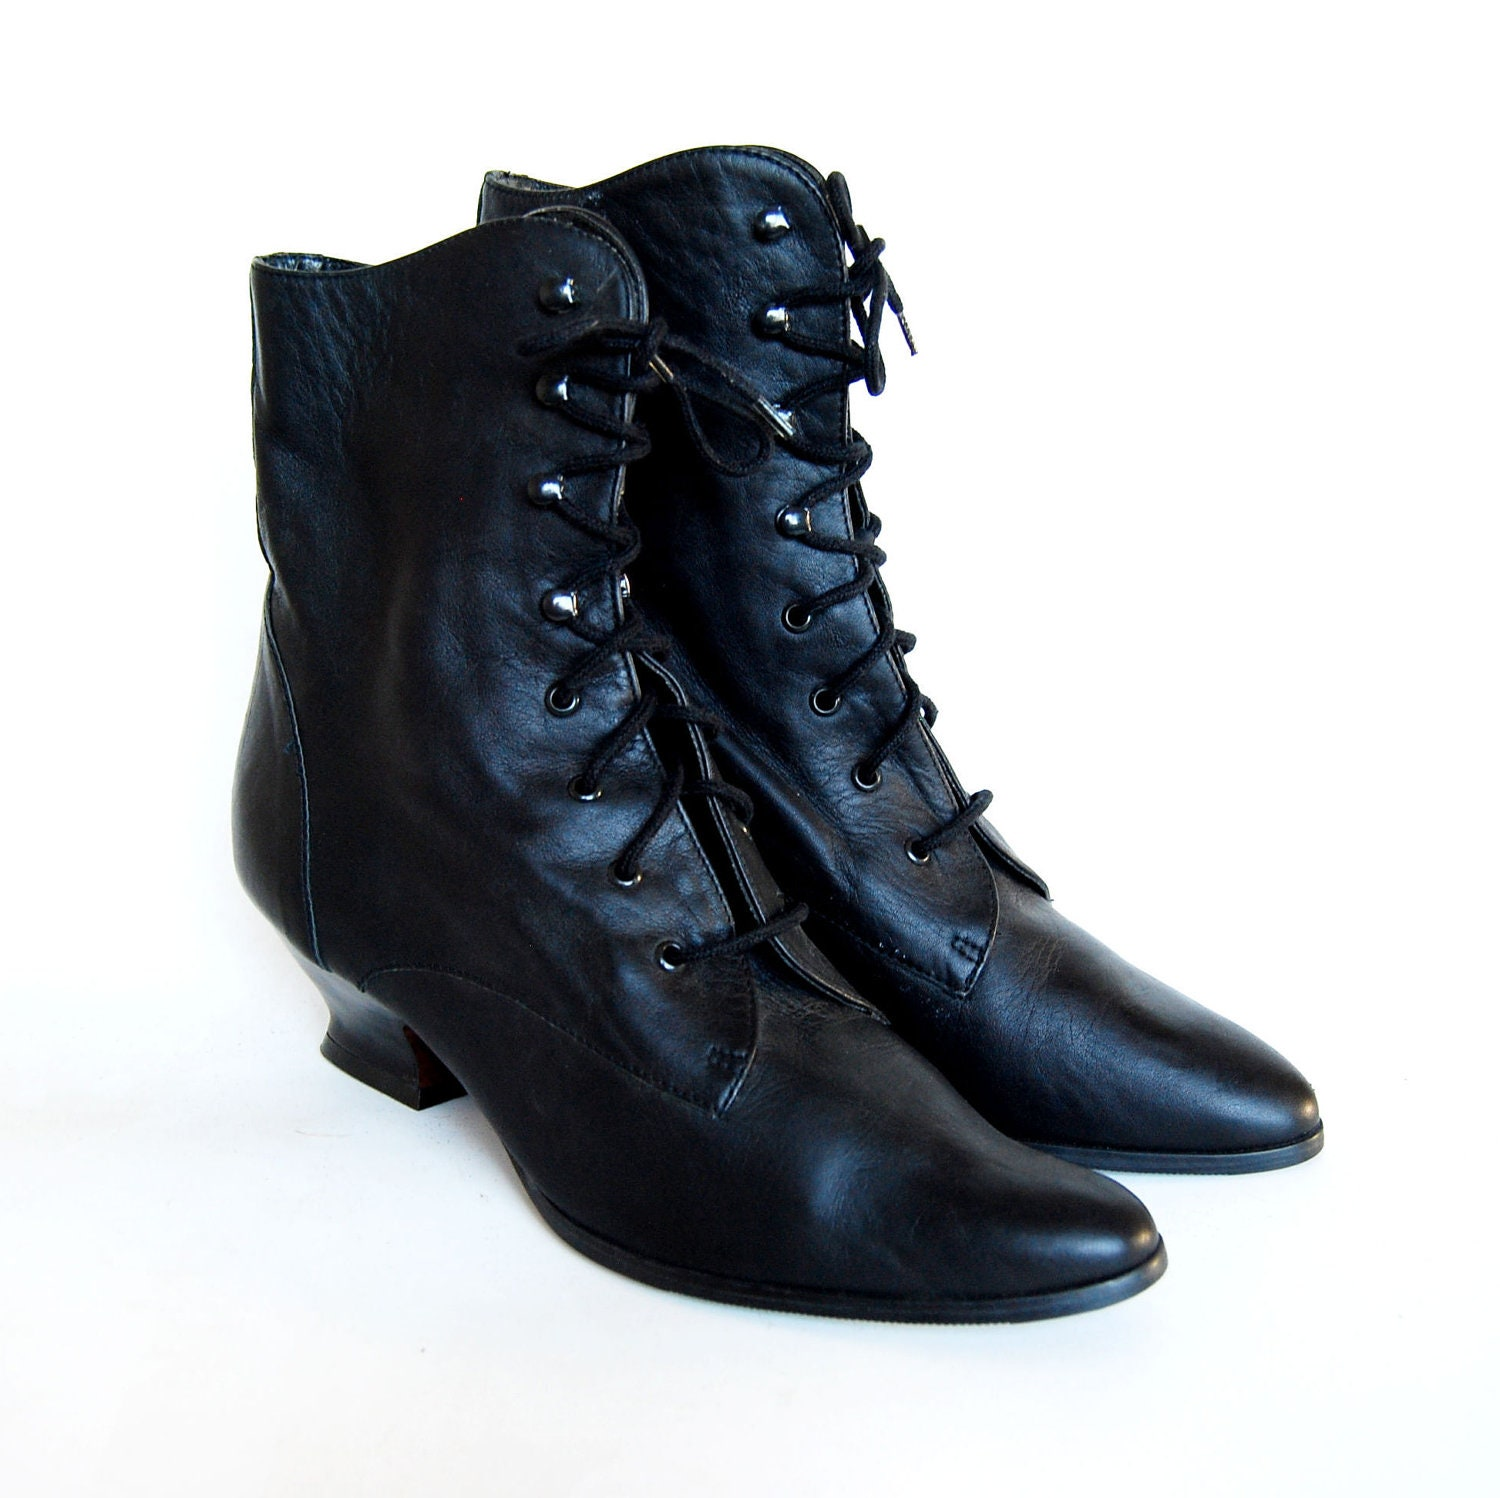 vintage GRANNY boots / 1990s black LEATHER victorian ankle